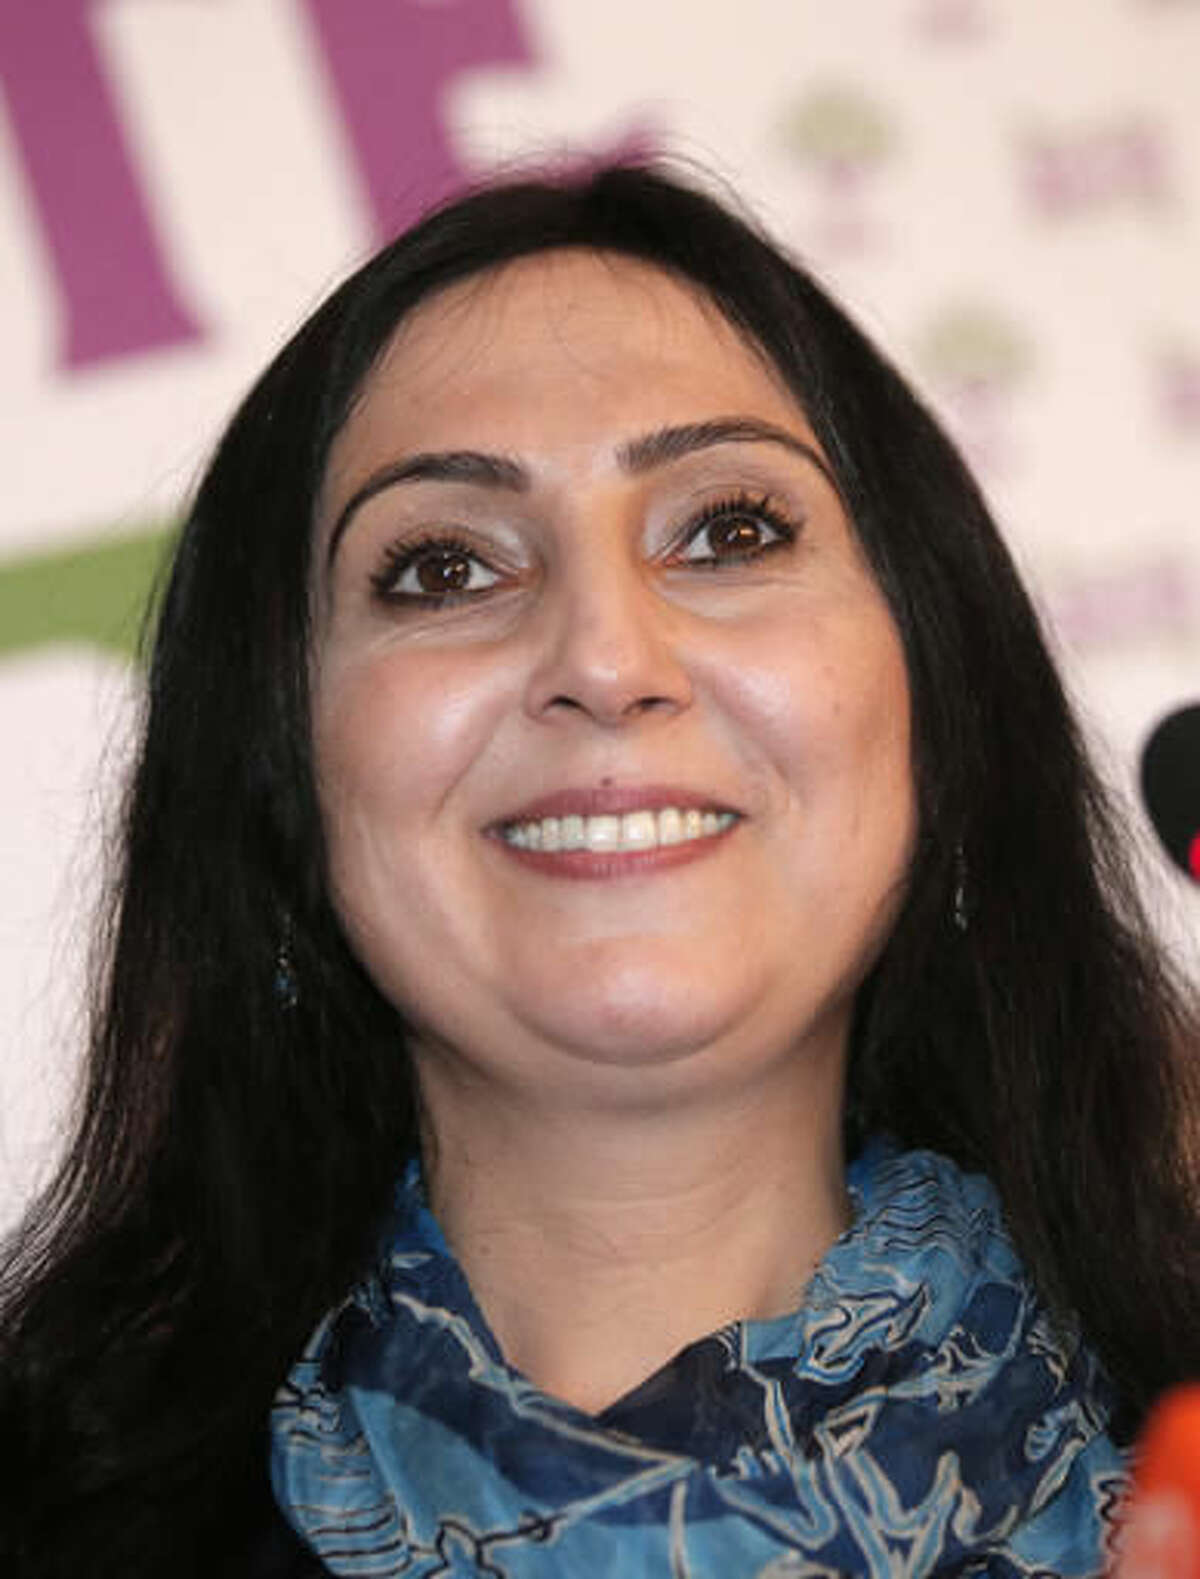 FILE- In this Sunday, June 7, 2015, file photo, Figen Yuksekdag, co-chair of the pro-Kurdish Peoples' Democratic Party, (HDP), smiles during a news conference in Istanbul regarding their party's success at the elections. Authorities in Turkey detained 11 pro-Kurdish lawmakers early Friday, Nov. 4, 2016, as part of ongoing terror-related investigations, including Demirtas, Yuksekdag and other senior officials, the Interior Ministry said. (AP Photo/Lefteris Pitarakis, File)